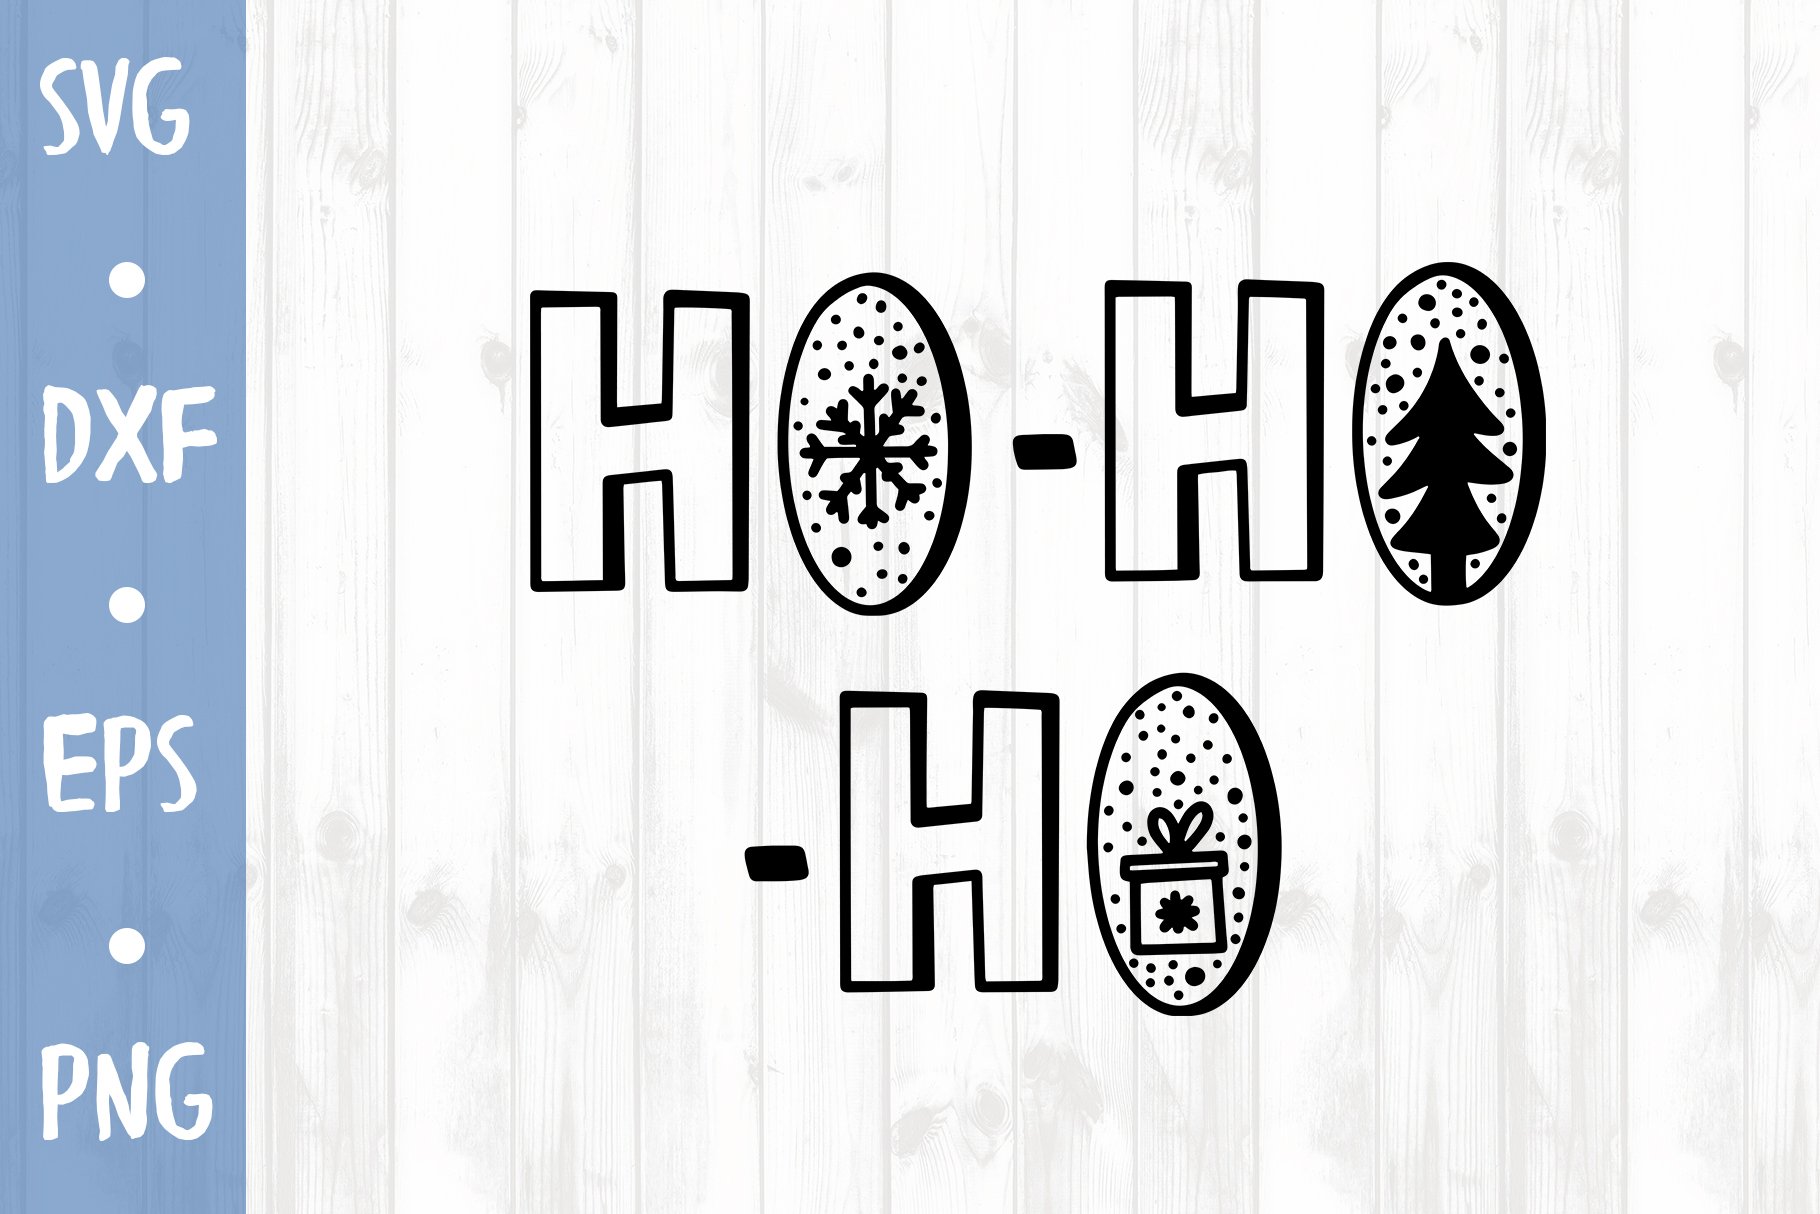 Ho-ho-ho SVG CUT FILE example image 1